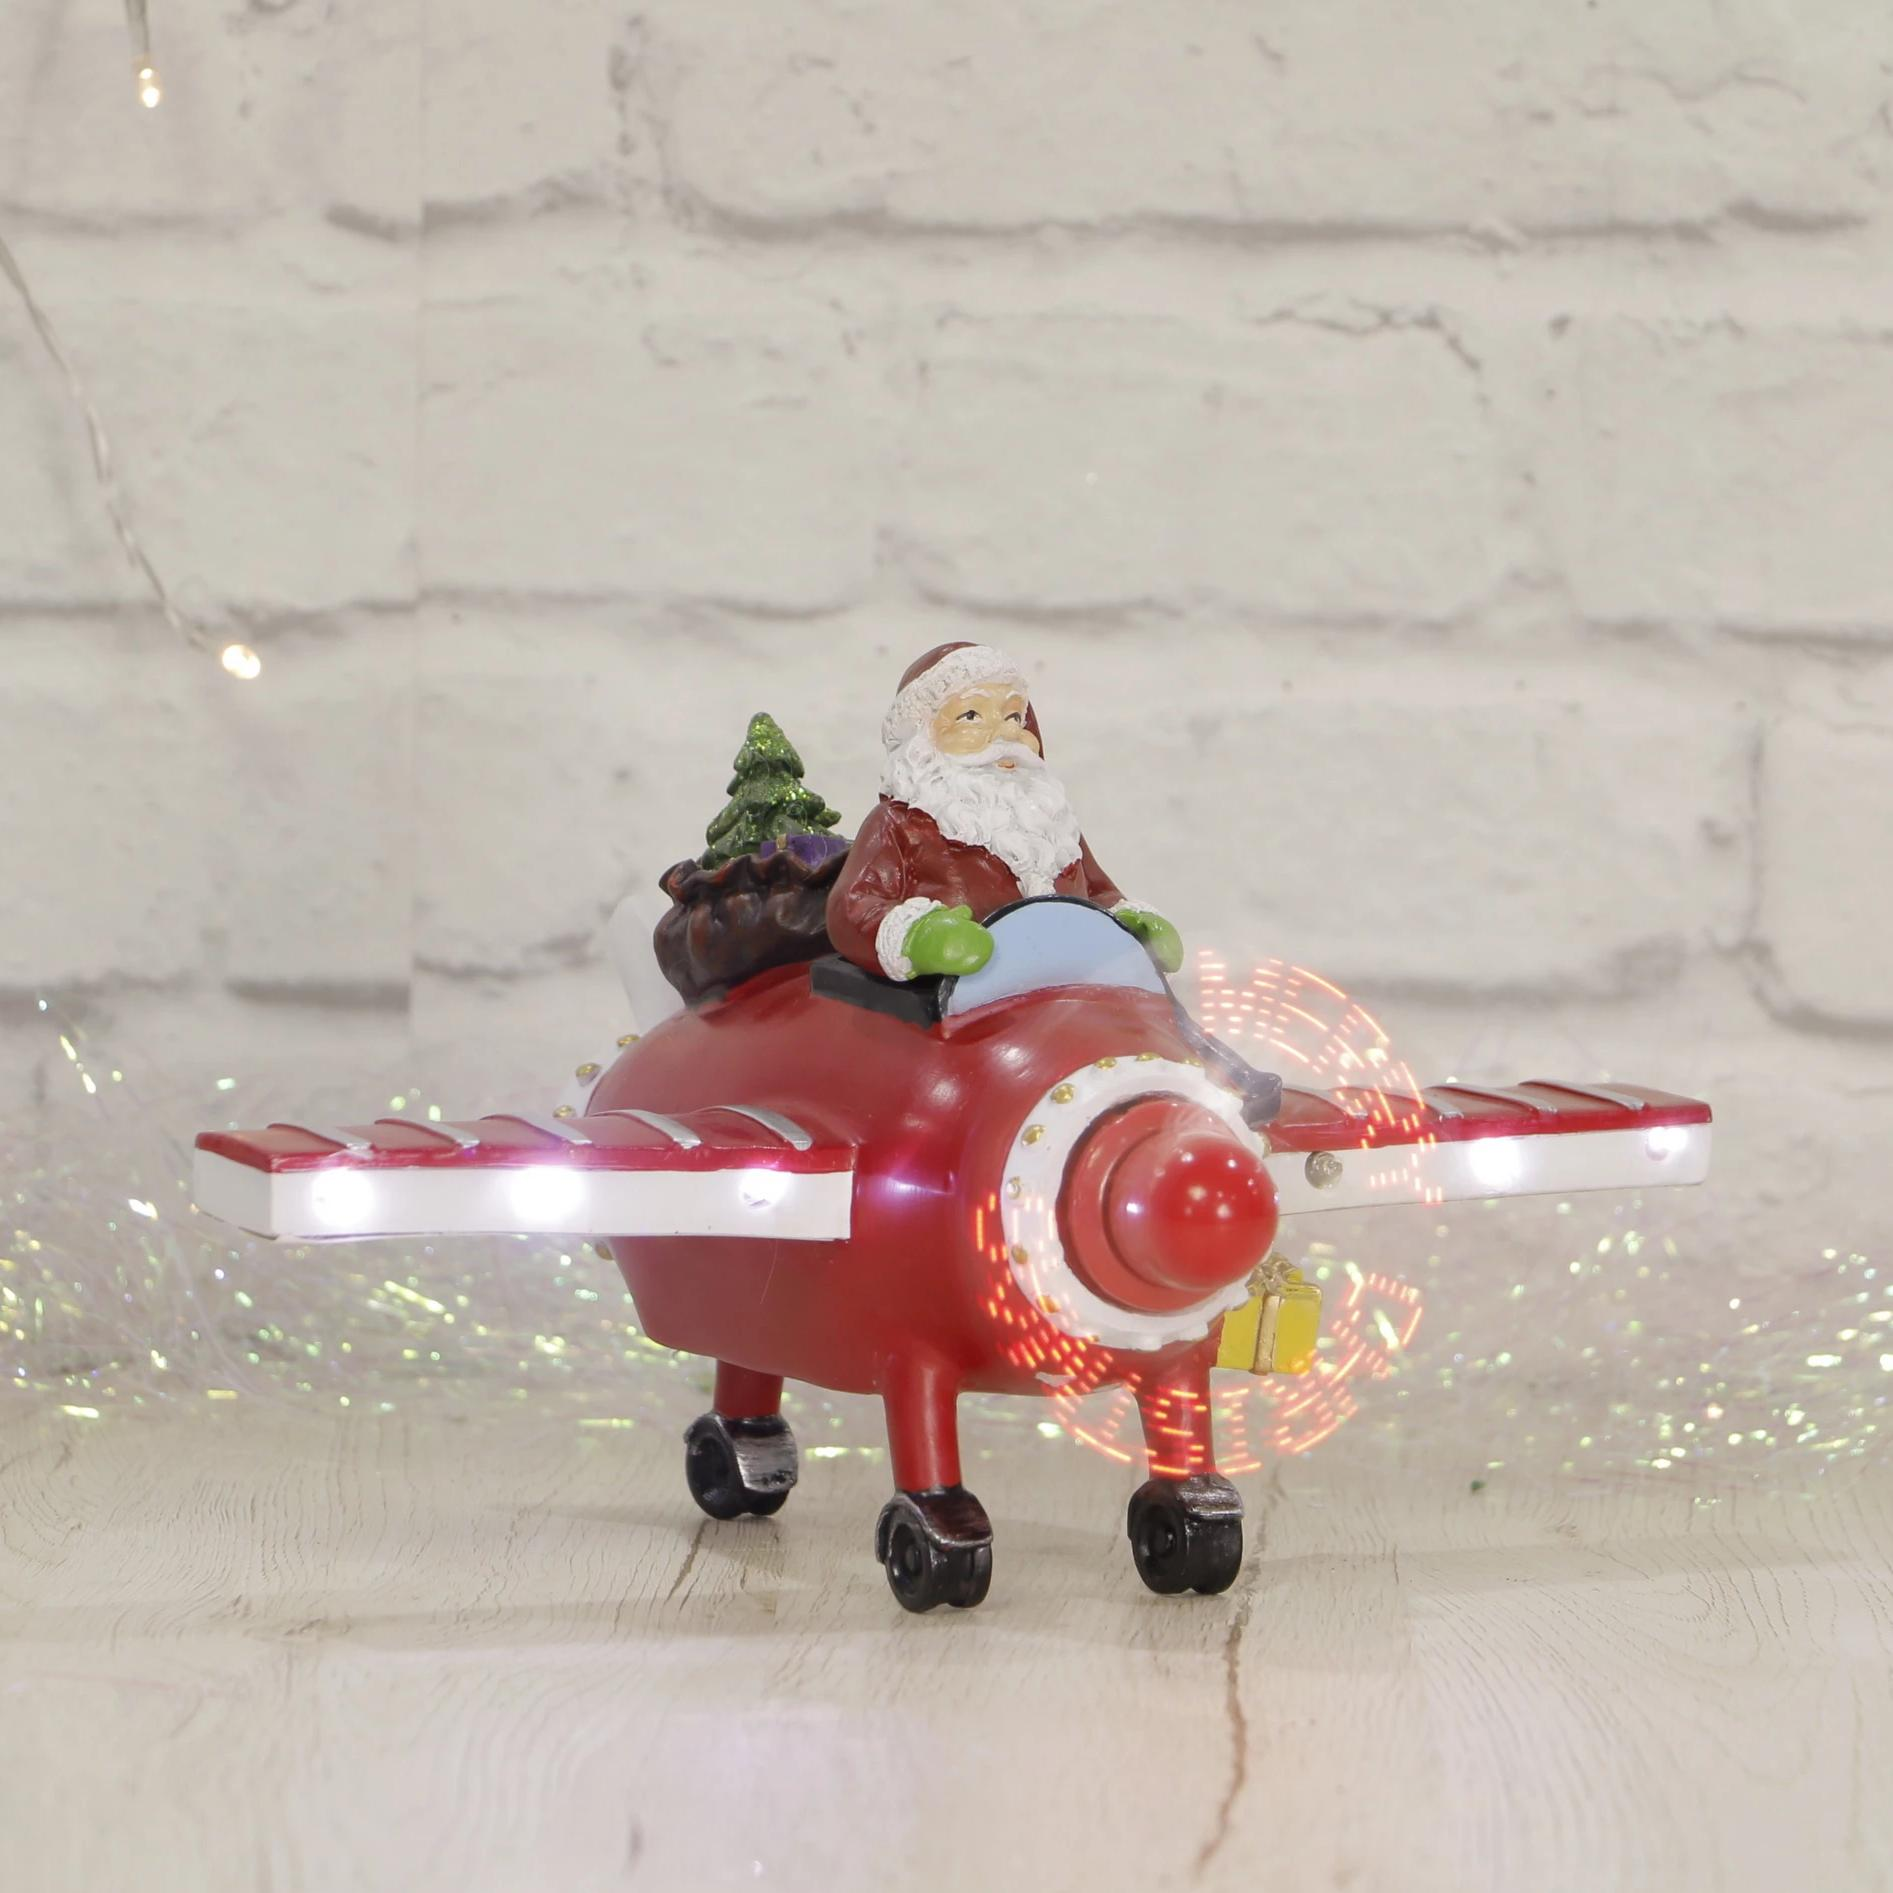 LED Ceramic Santa in Plane